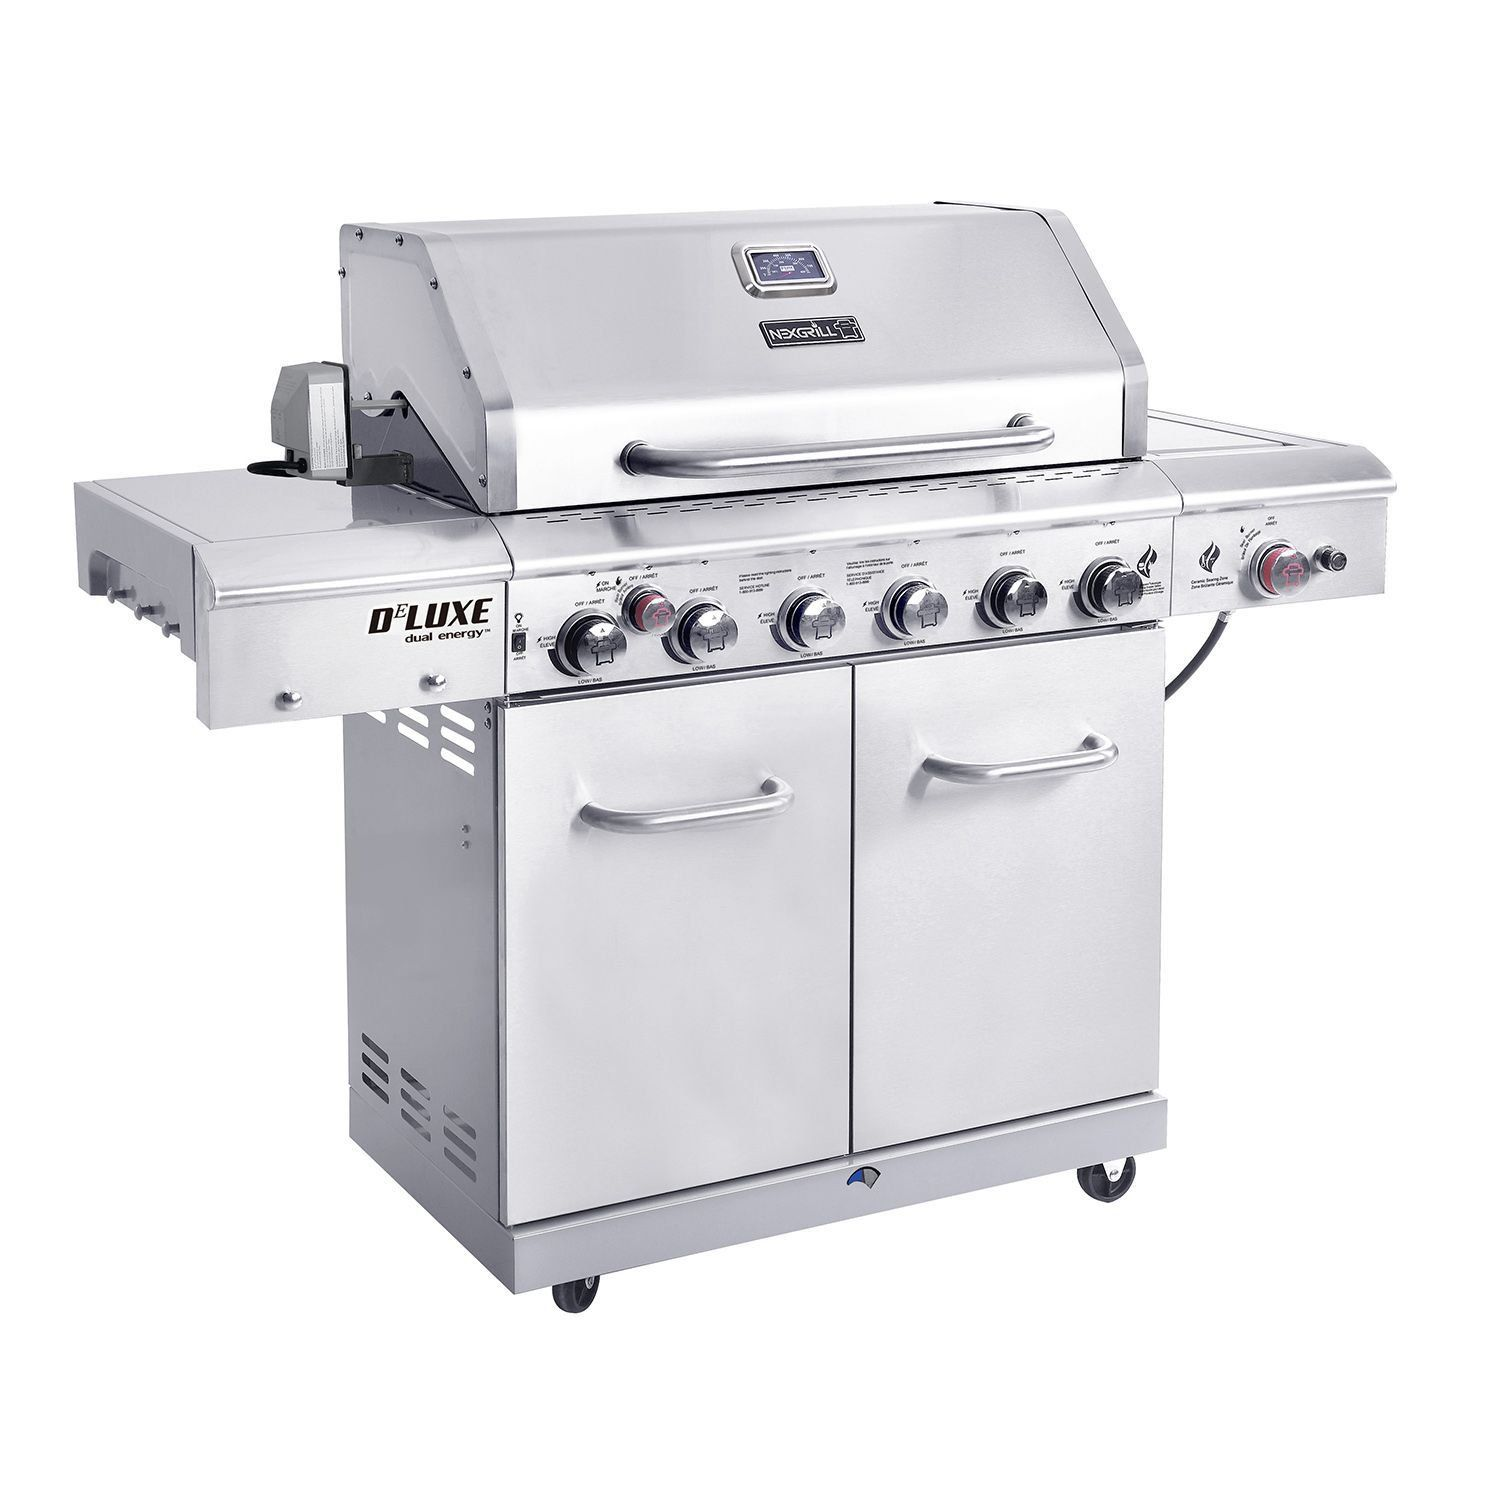 nexgrill 6 burner gas grill with searing side burner and